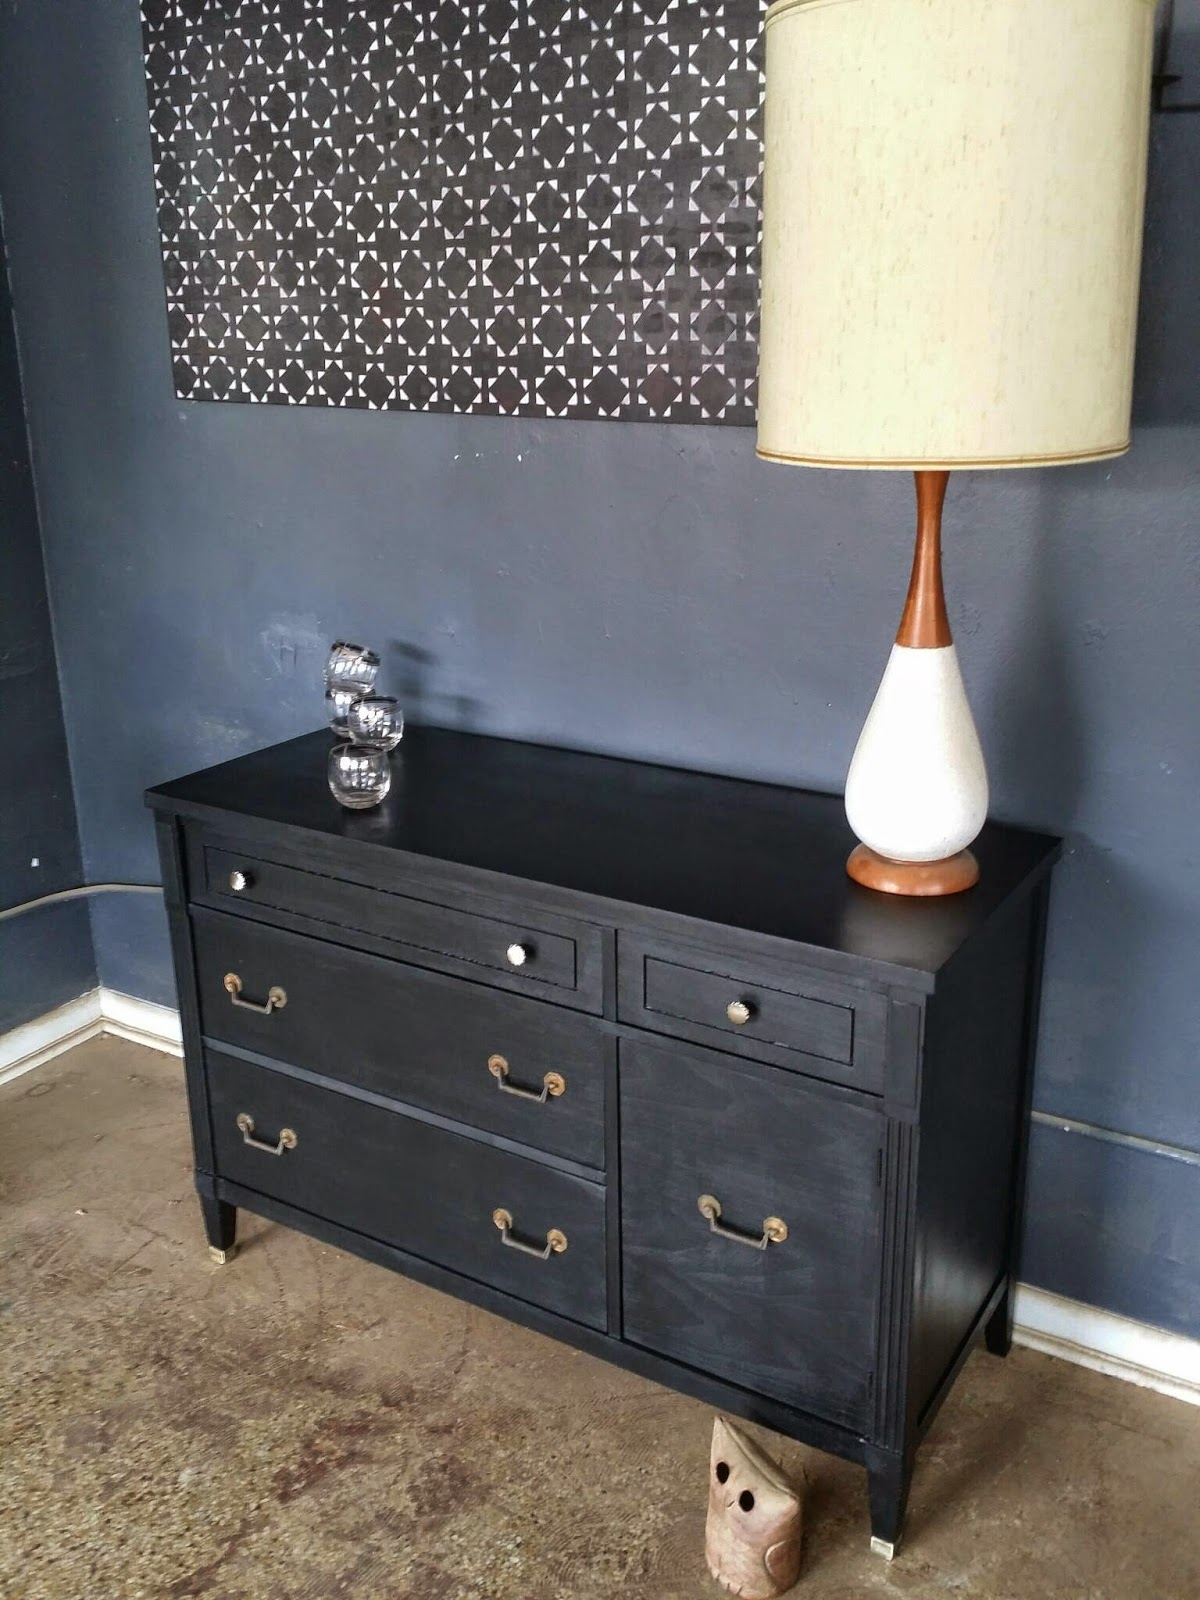 ... In A Sleek Black That Looks Great With The Original Hardware. Perfect  To Use As A Media Console Buffet Credenza Changing Table Sideboard Or Bar.